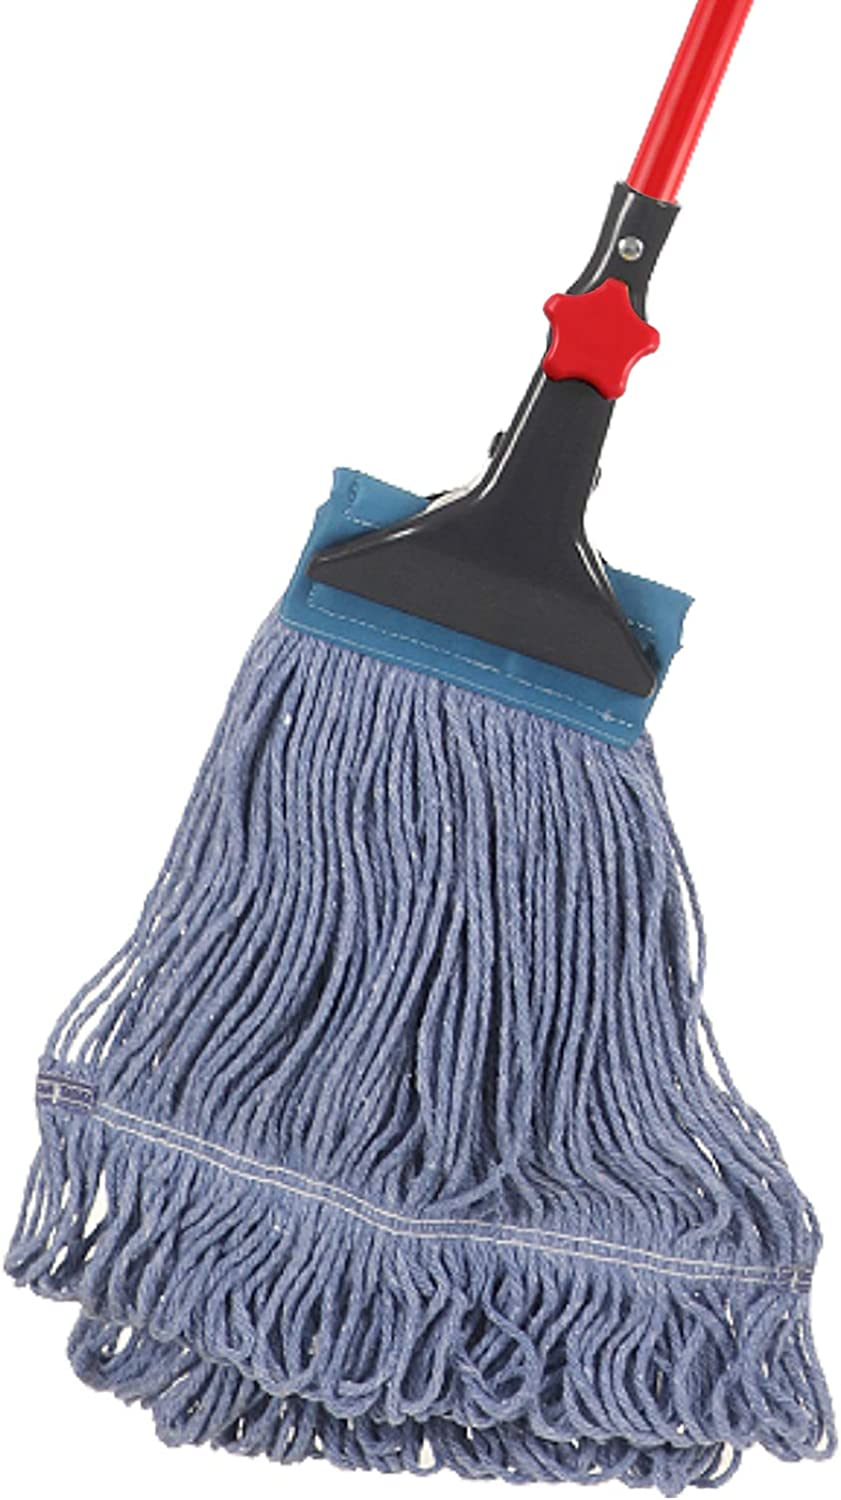 Yocada Looped-End String Wet Mop Heavy Duty Cotton Mop Commercial Industrial Grade Iron Pole Jaw Clamp Floor Cleaning 52in Long Red